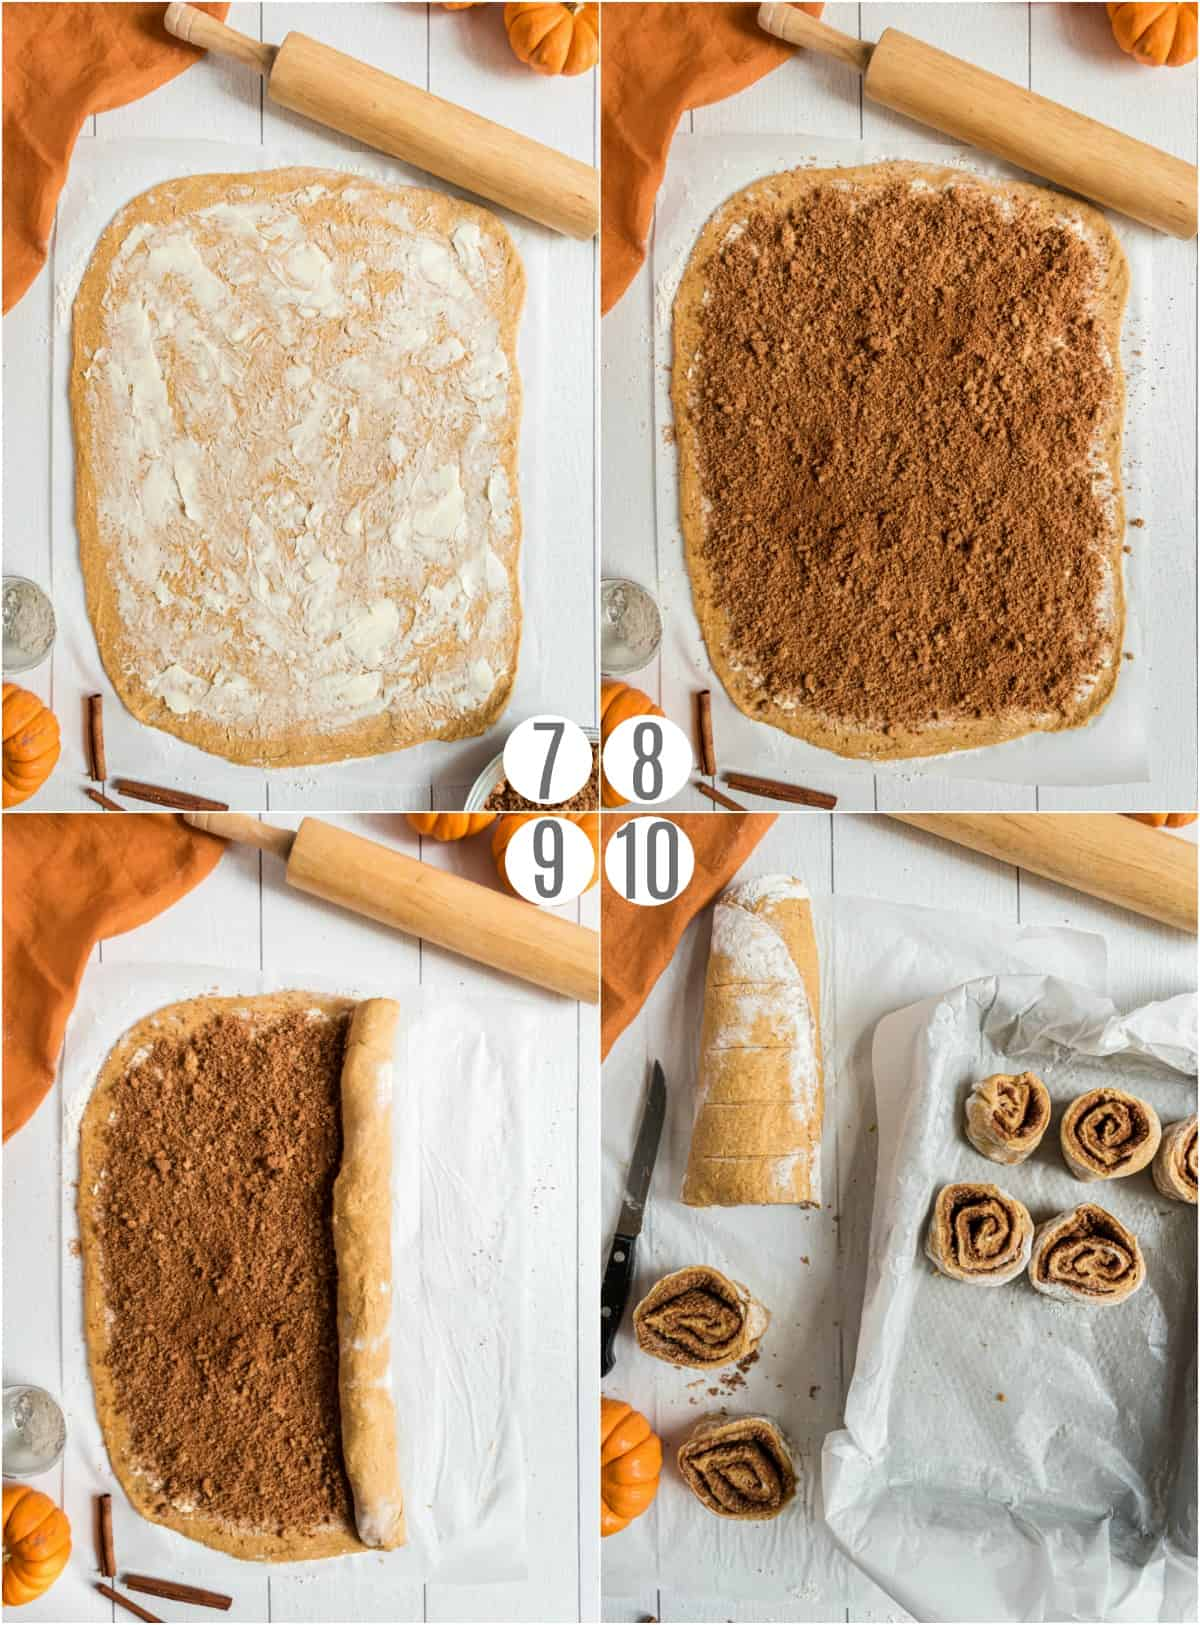 Step by step photos showing how to add filling to pumpkin cinnamon rolls and roll the dough.